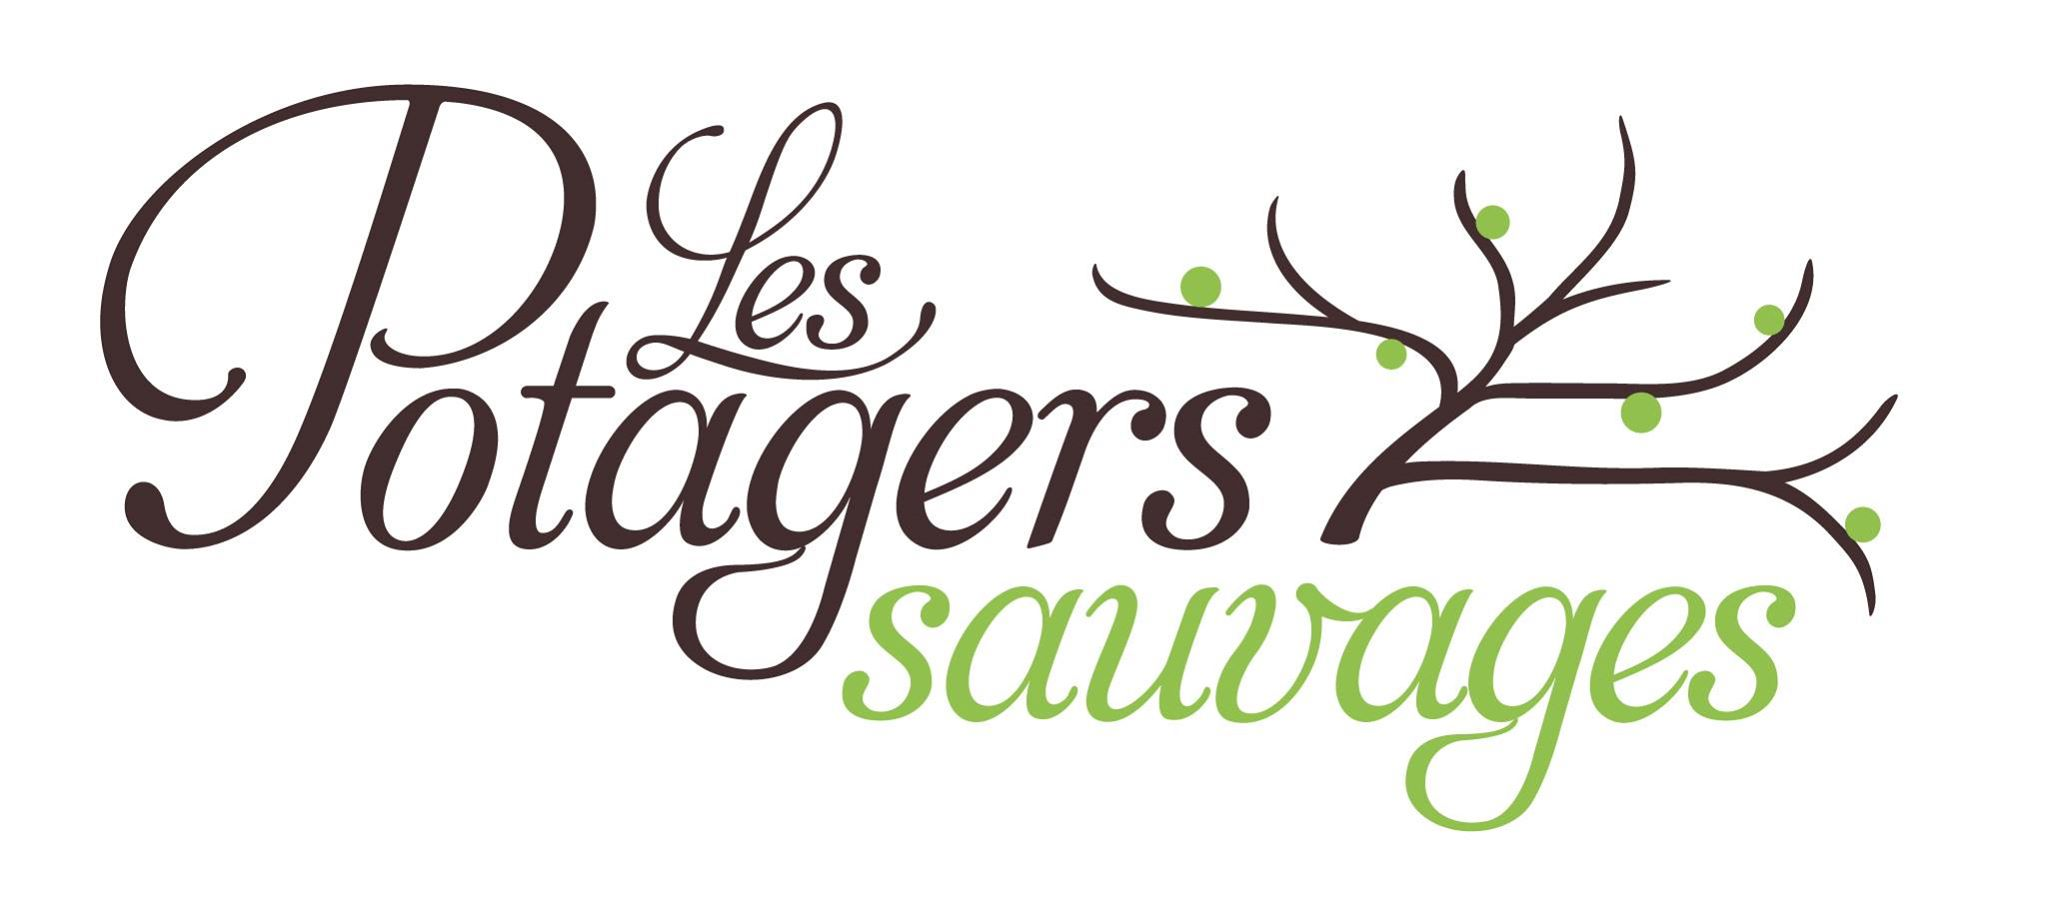 les-potagers-sauvages.jpg